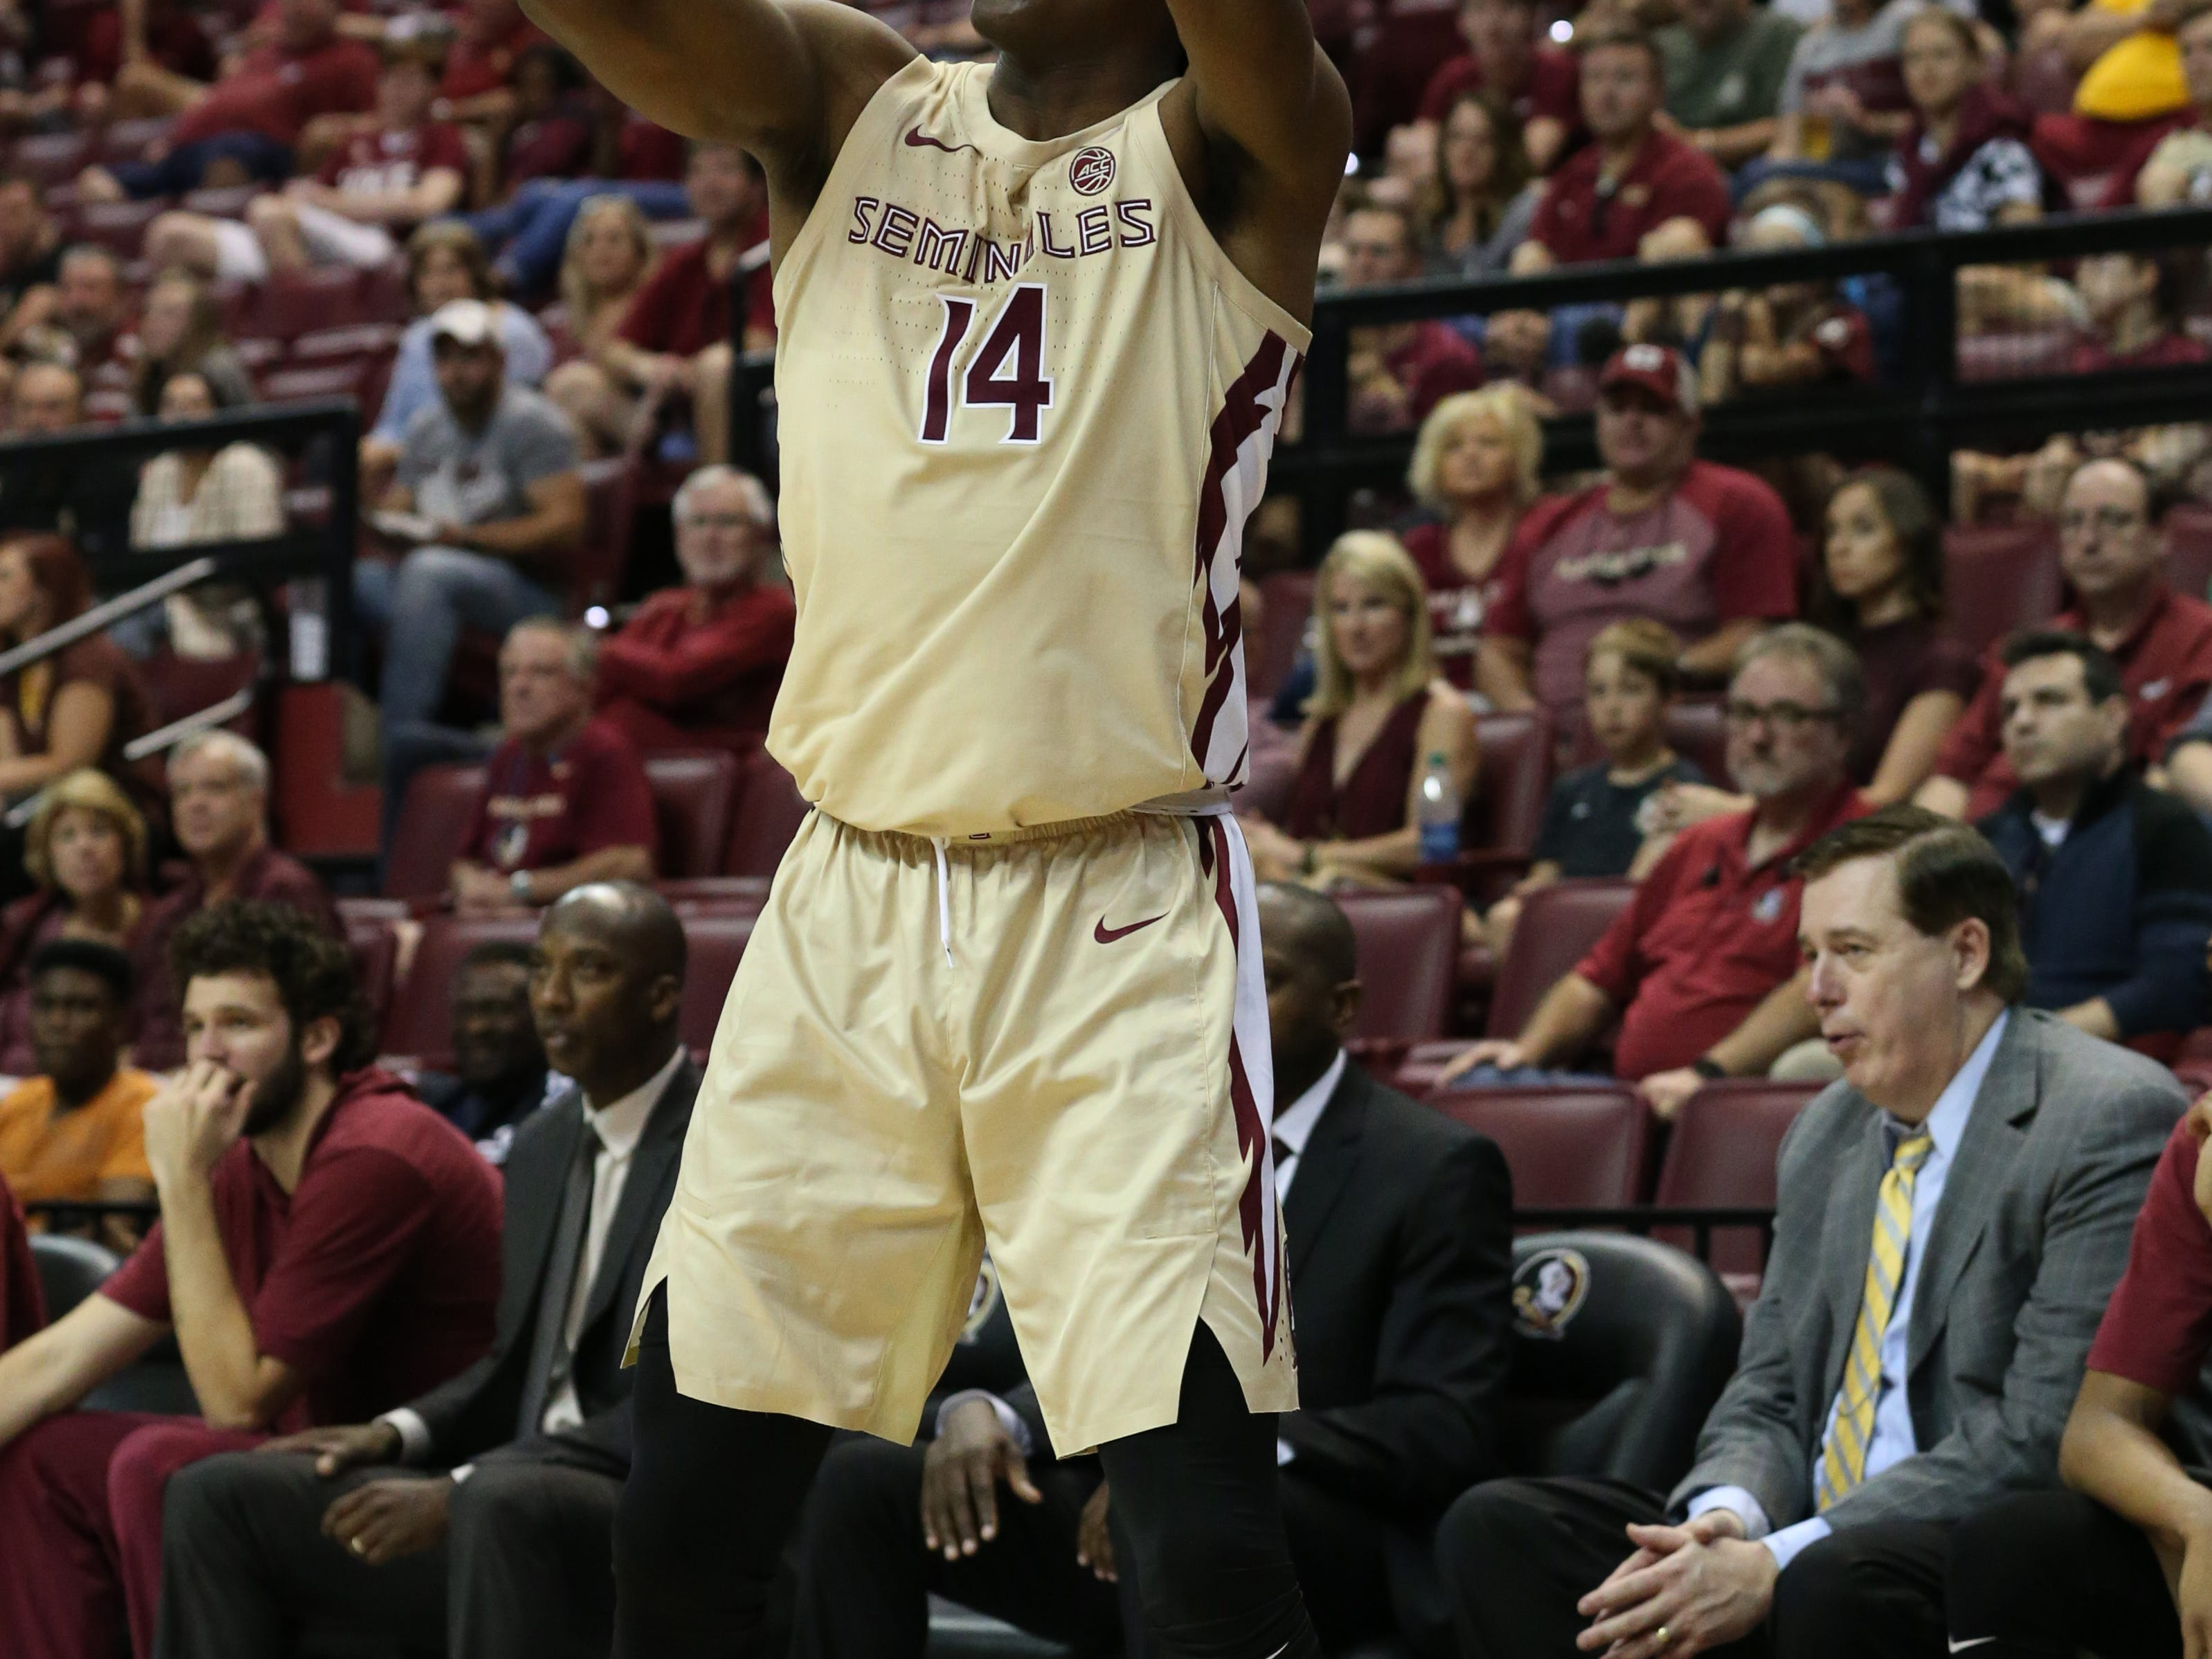 Florida State Seminoles guard Terance Mann (14) shoots for three as the Florida State Seminoles host the Winthrop Eagles for men's basketball at the Tucker Civic Center, Tuesday, Jan. 1, 2019.